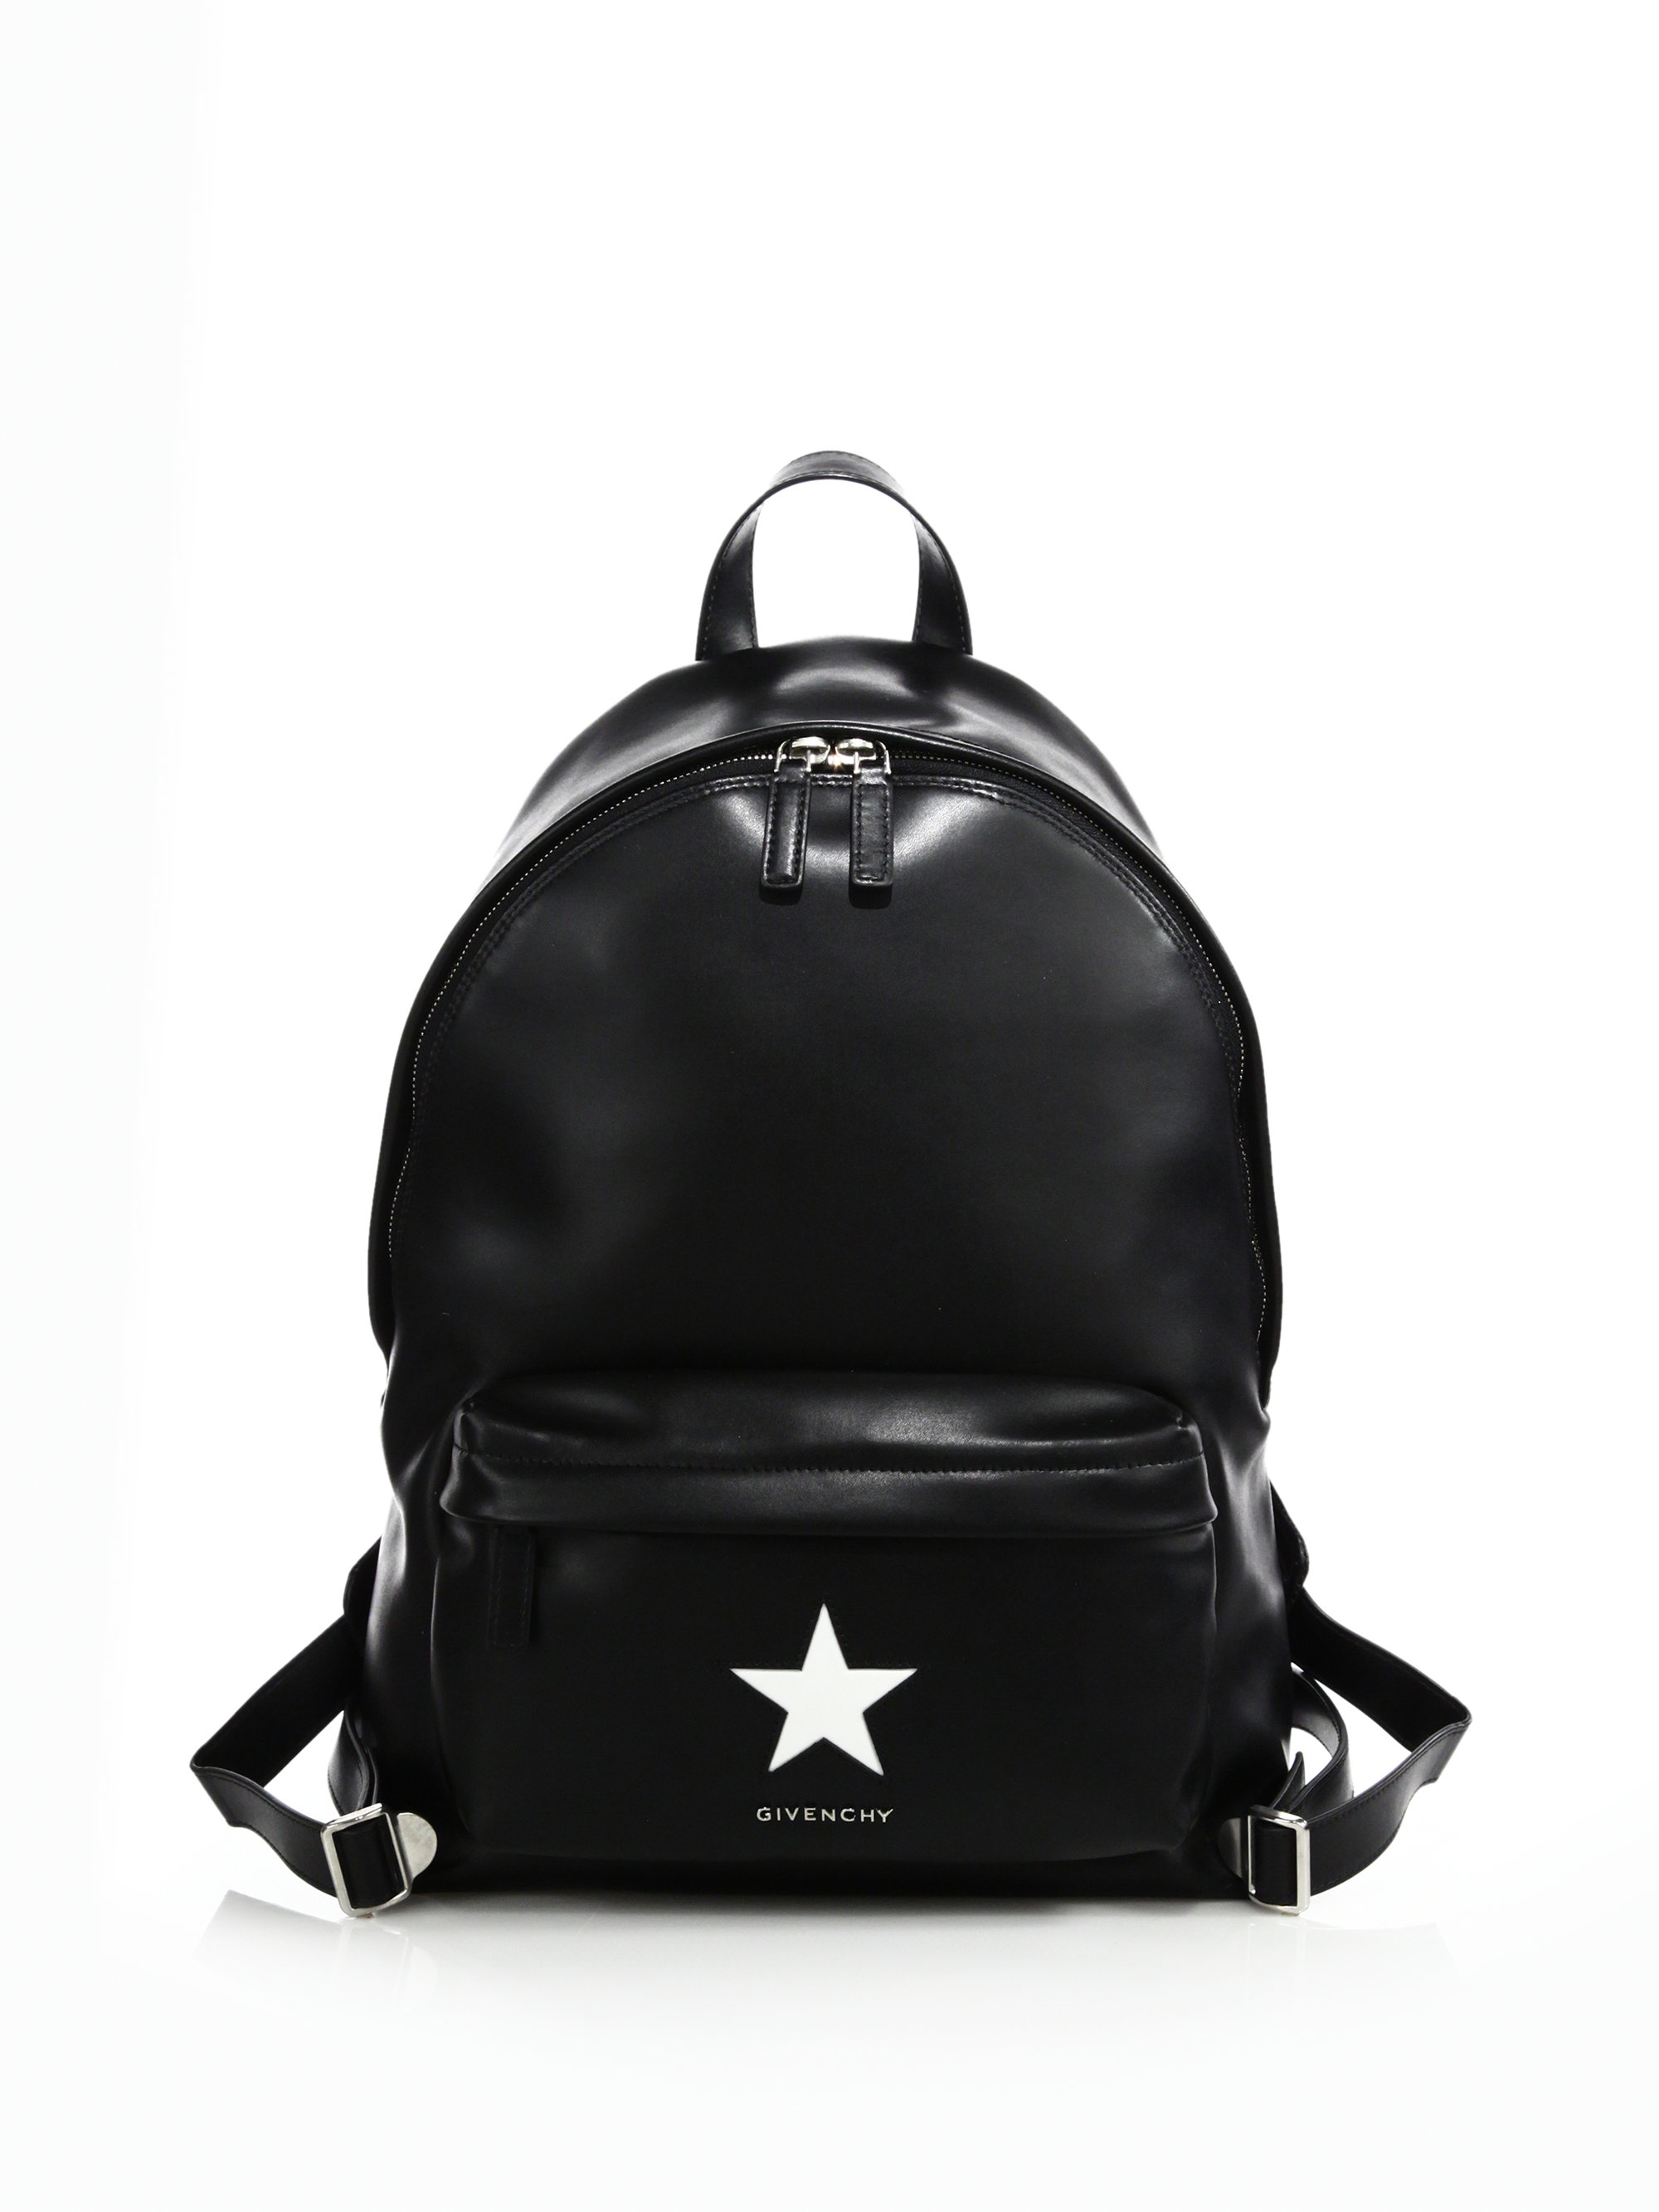 Black leather backpack with logo print Givenchy cSFl7